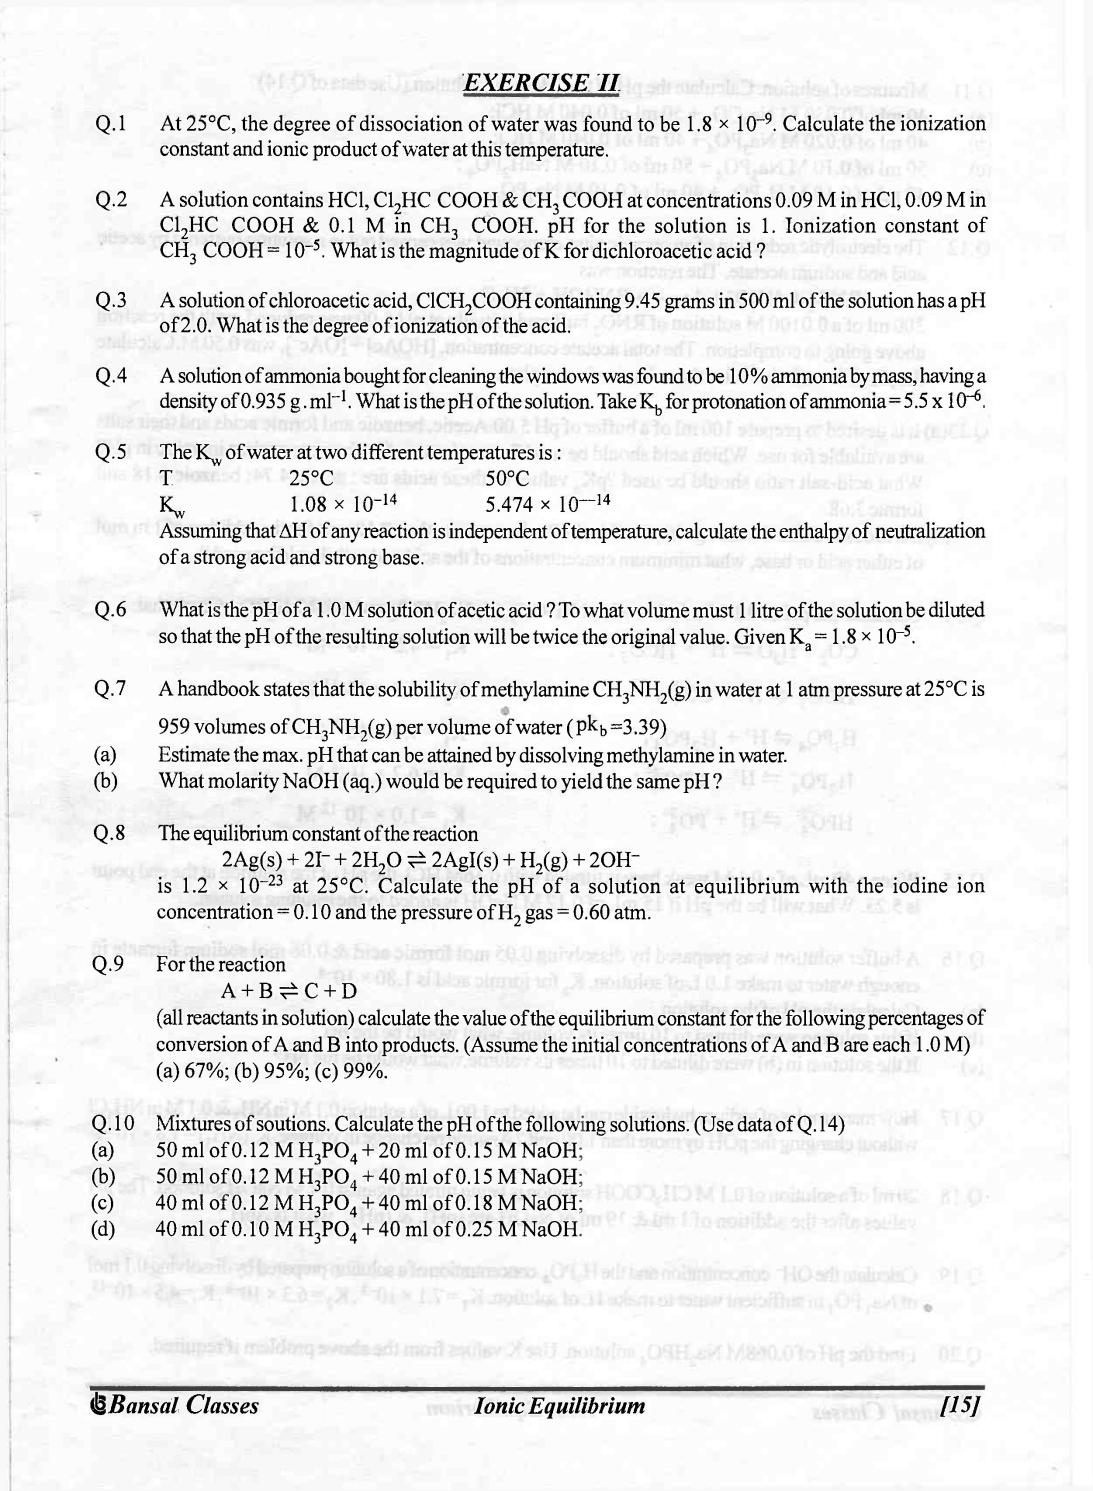 Bansal classes chemistry study material for iit jee by S